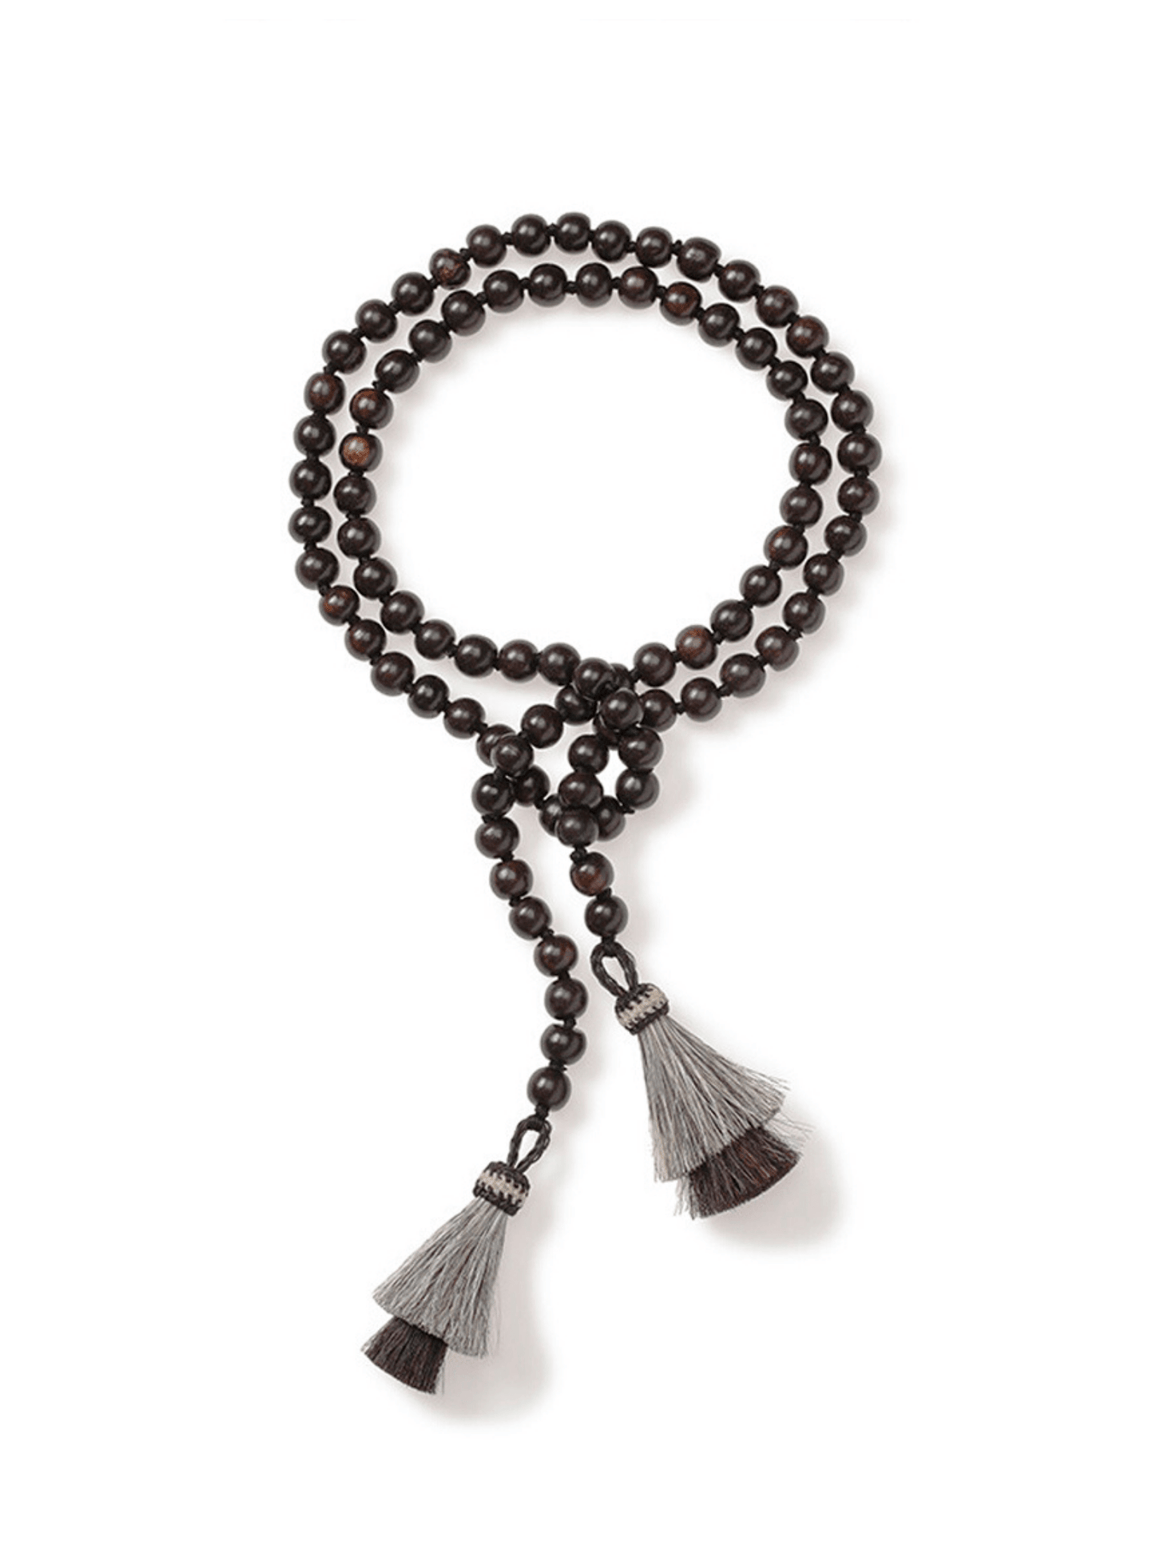 Brown Ironwood Necklace with Horsehair Tassels